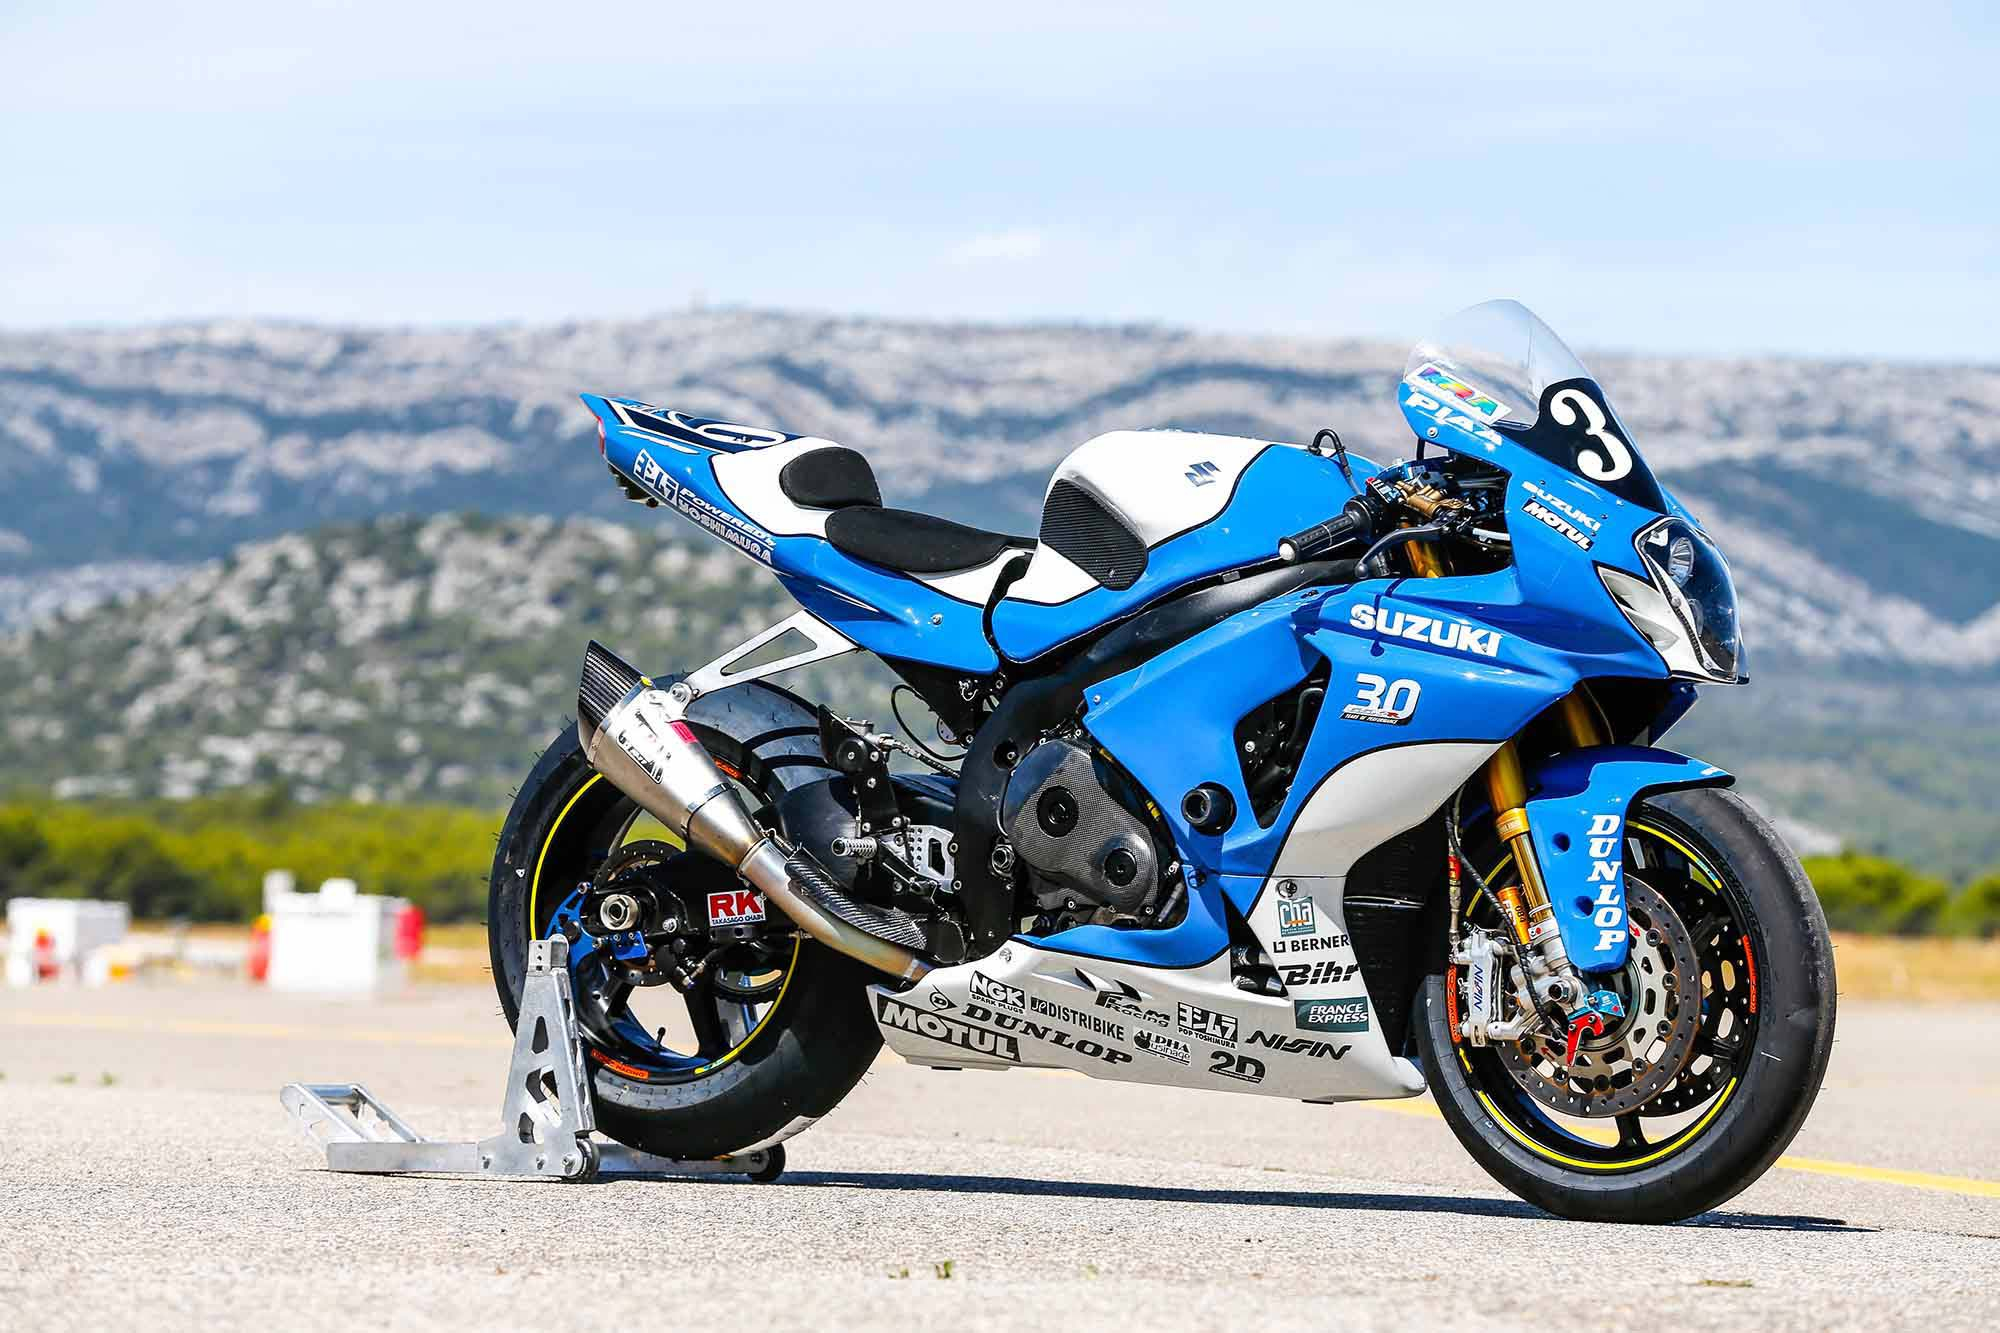 Sert suzuki endurance racing team makers of the very finest gsx rs endurance racing although even more so real roads racing tends to produce